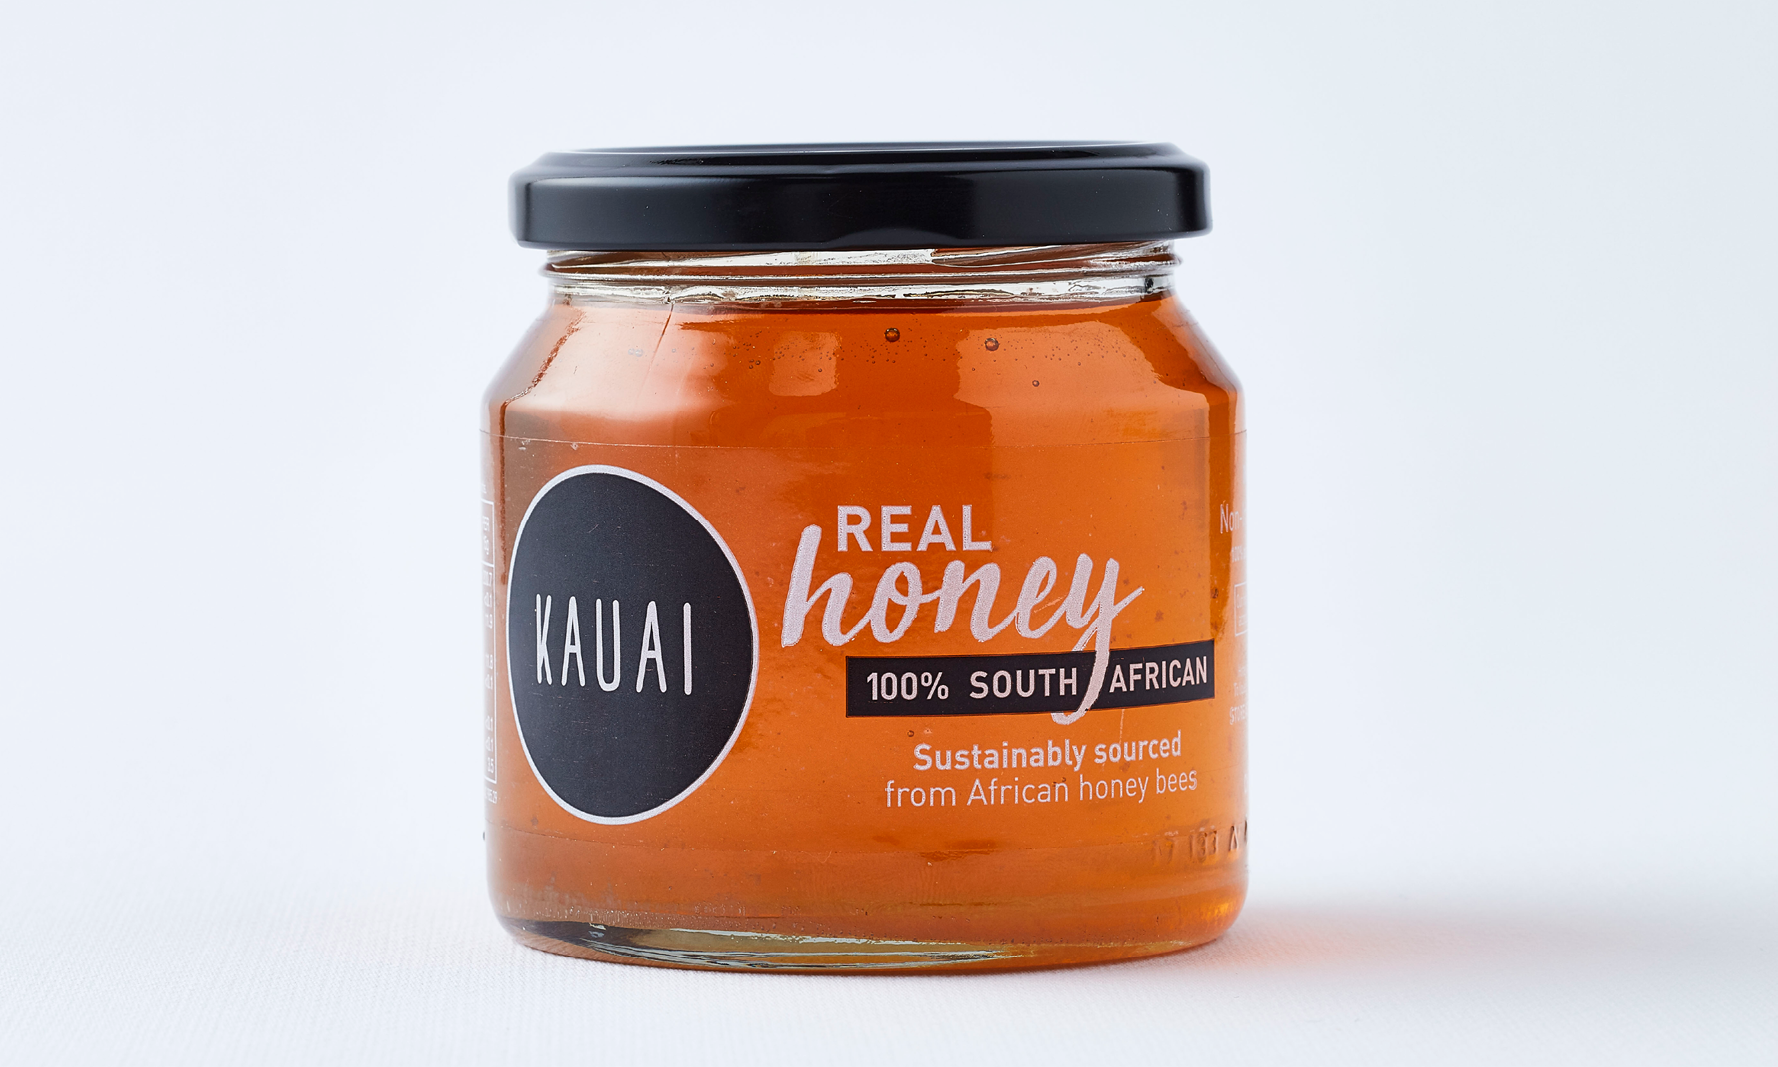 Kauai Real Honey 100% South African